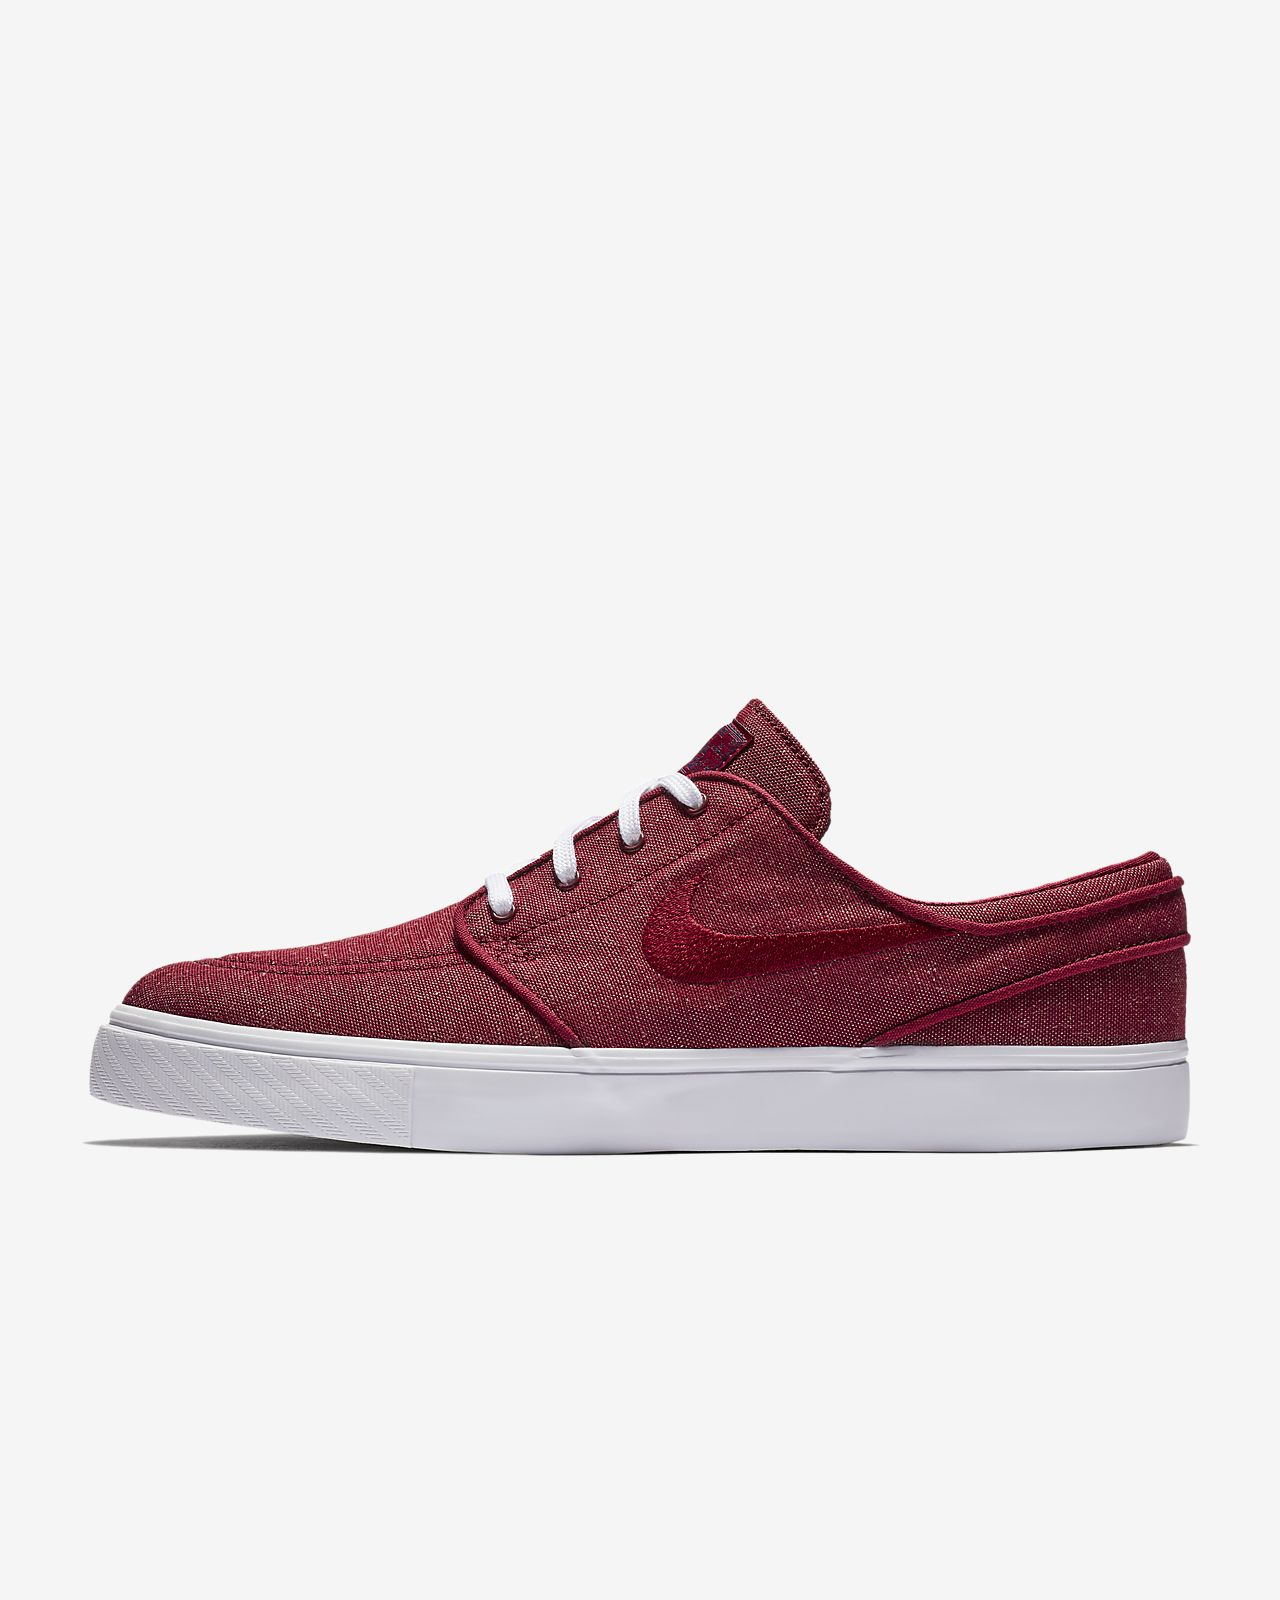 purchase sale online Nike Men's SB Zoom Blazer Low Sk... discount 100% original buy cheap Inexpensive amazing price sale online l2ZHDqMHpD